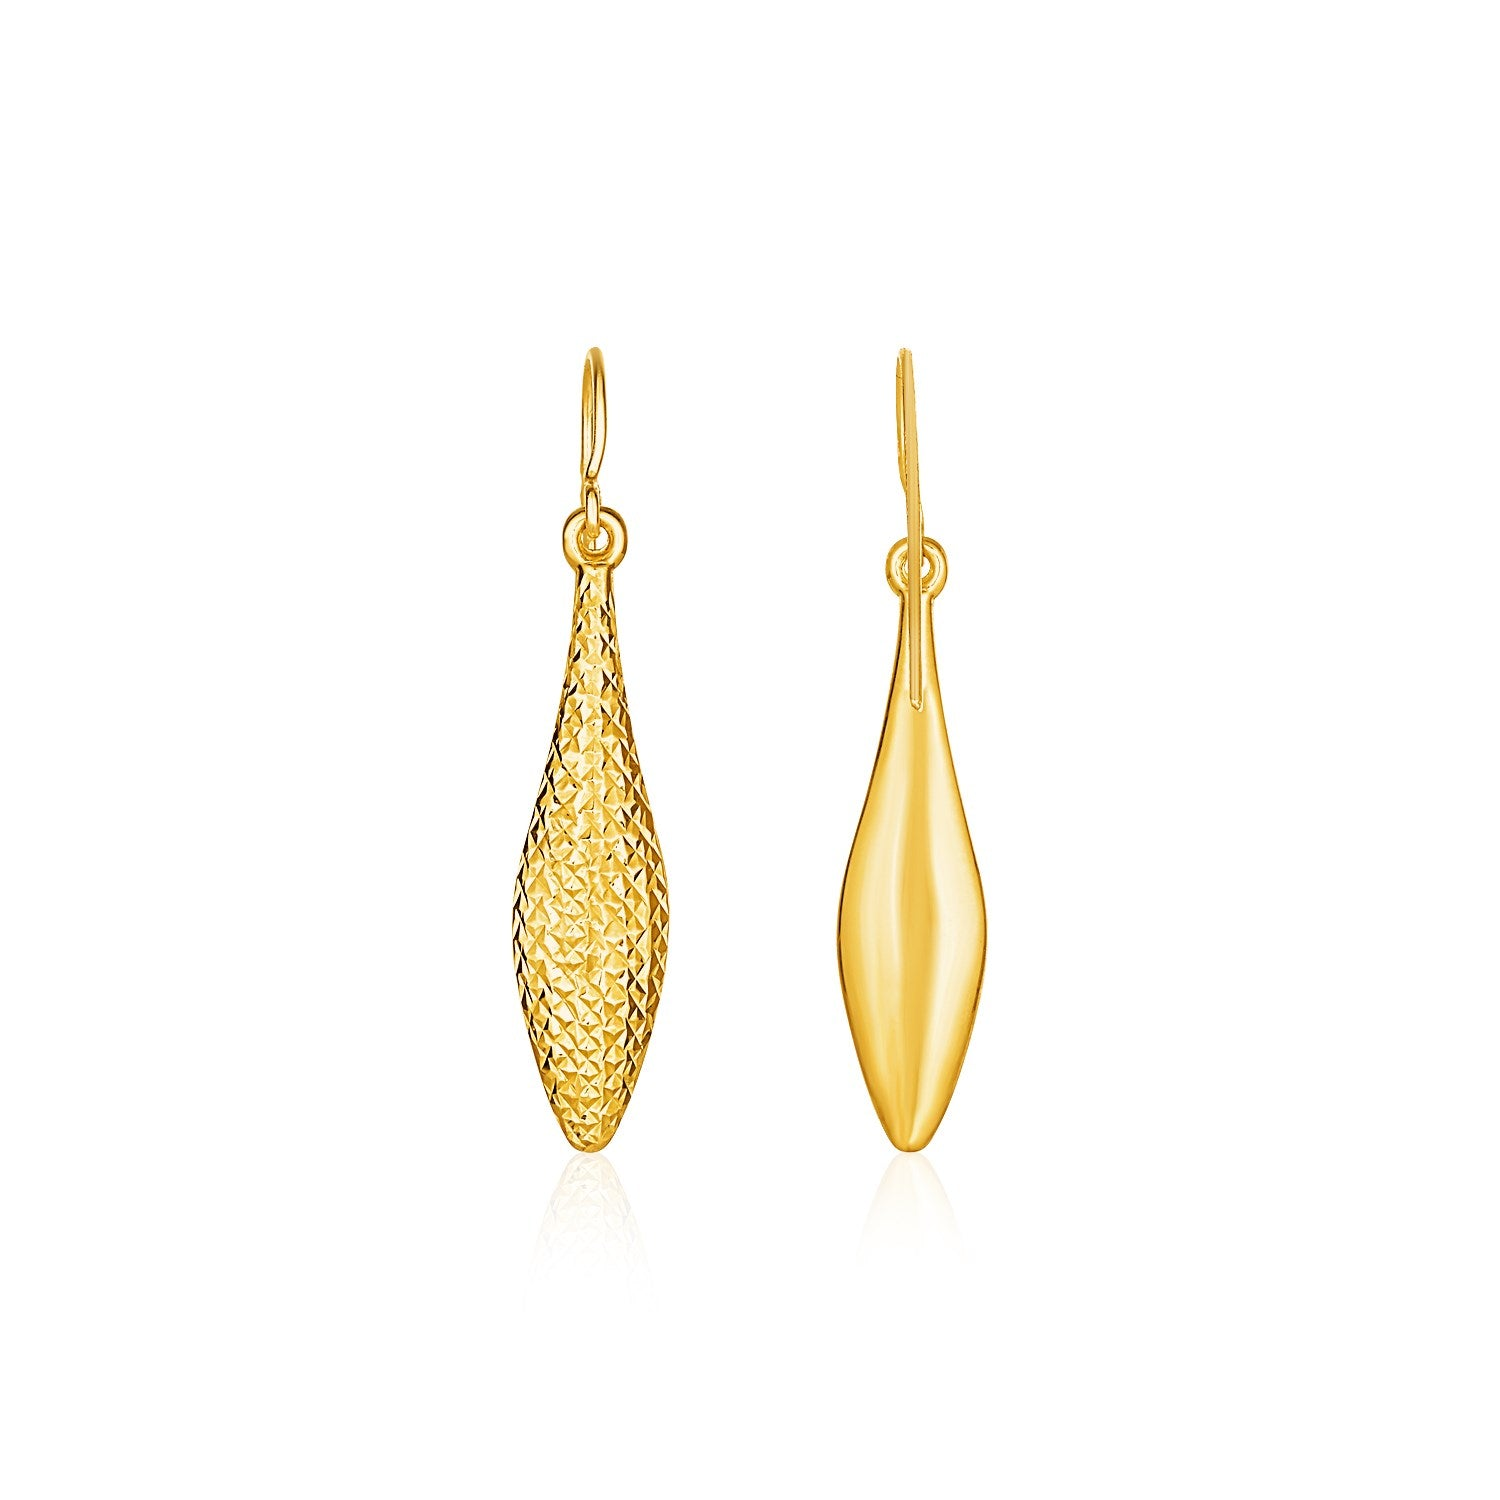 Reversible Textured and Smooth Puffed Marquise Shape Earrings in 10K Yellow Gold